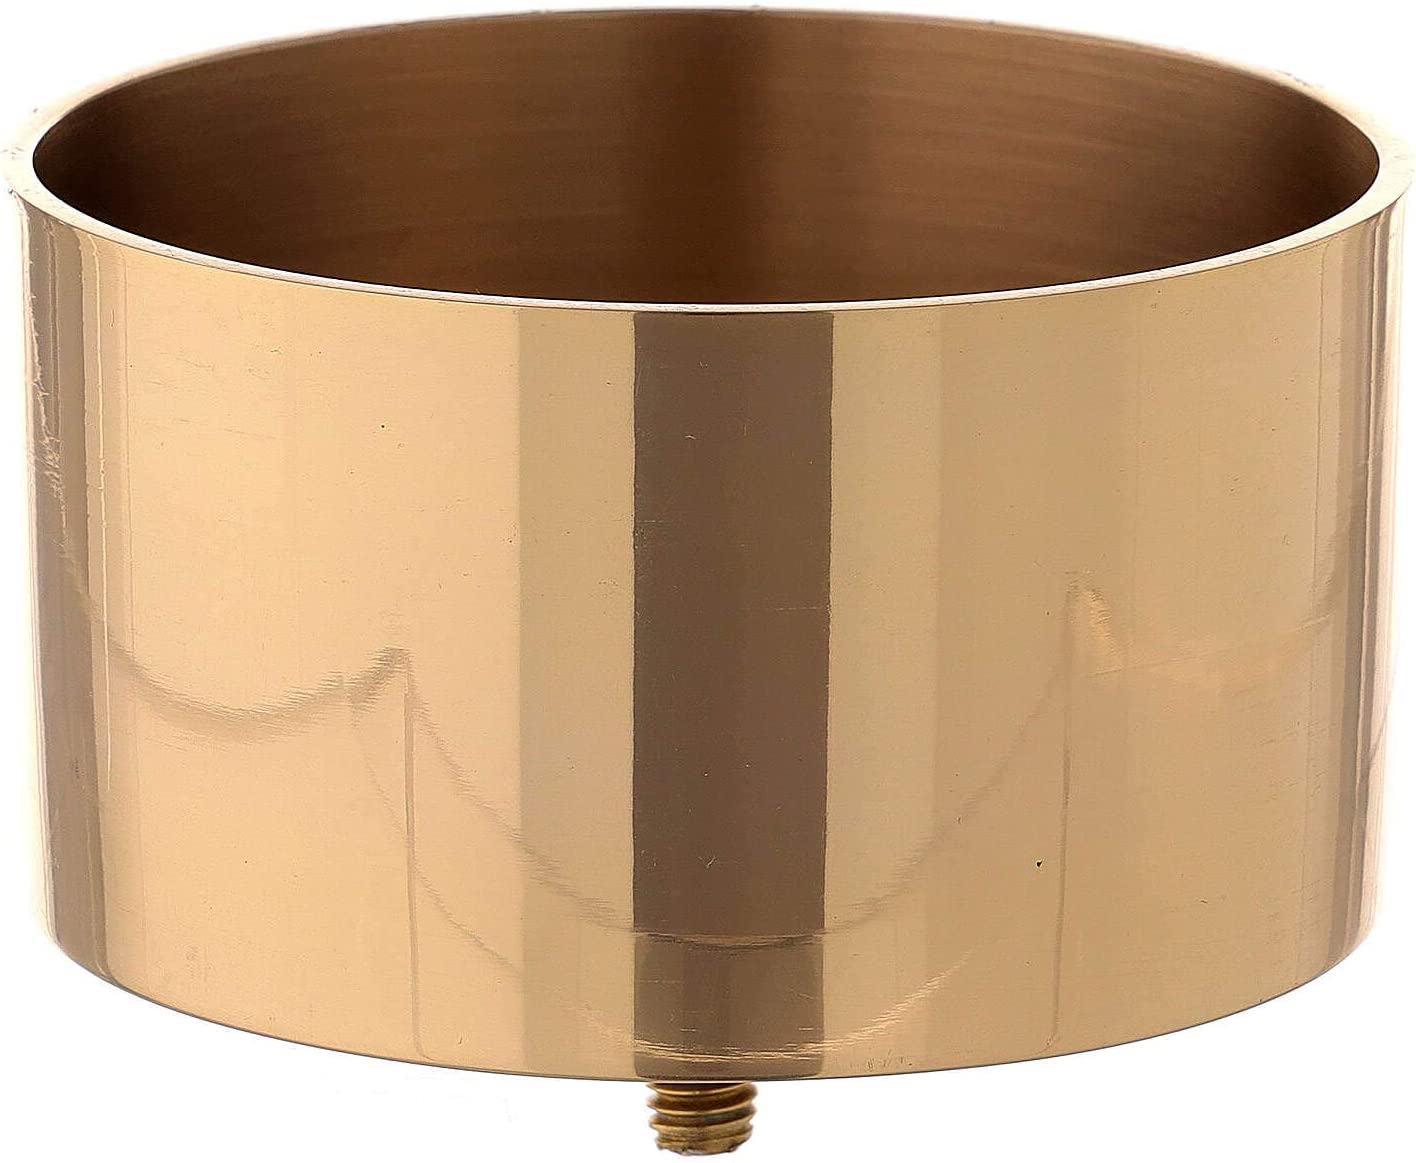 Holyart Candlestick Mail order Box for Convertible New Orleans Mall in Golden Bra Chandelier